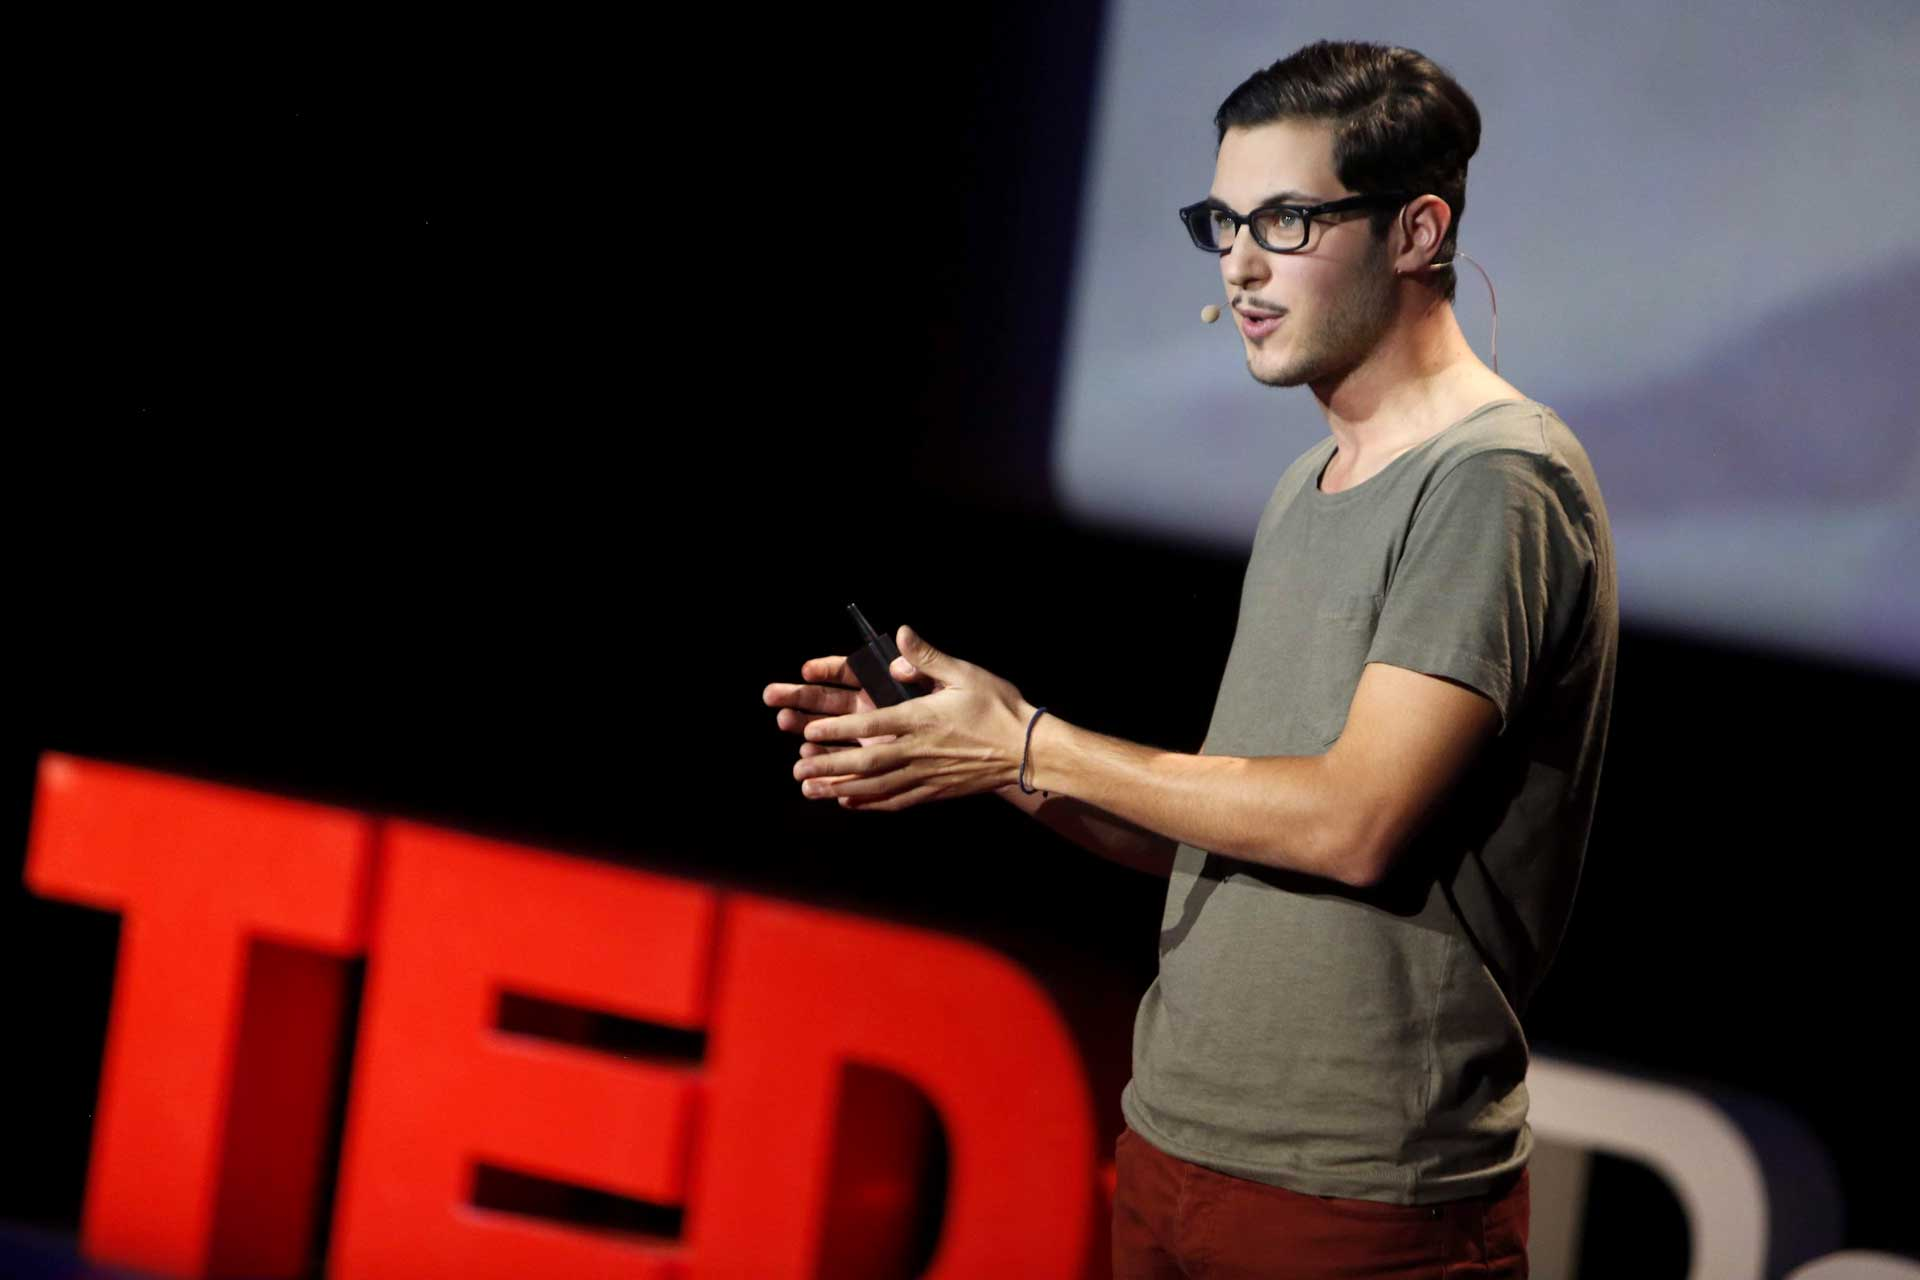 conference-TEDxParis-2013-20.jpg